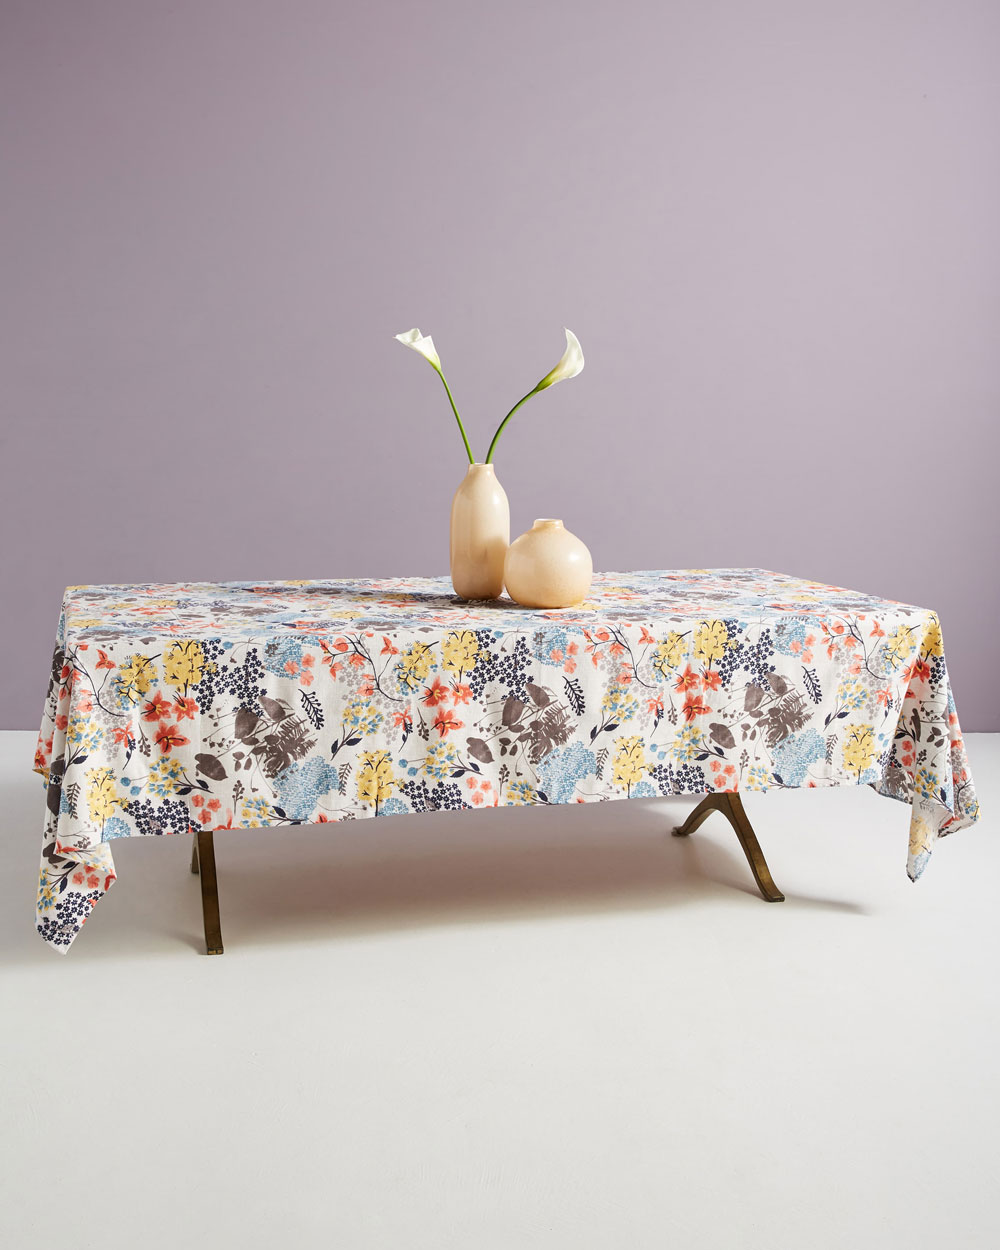 anthropology home tablecloth floral